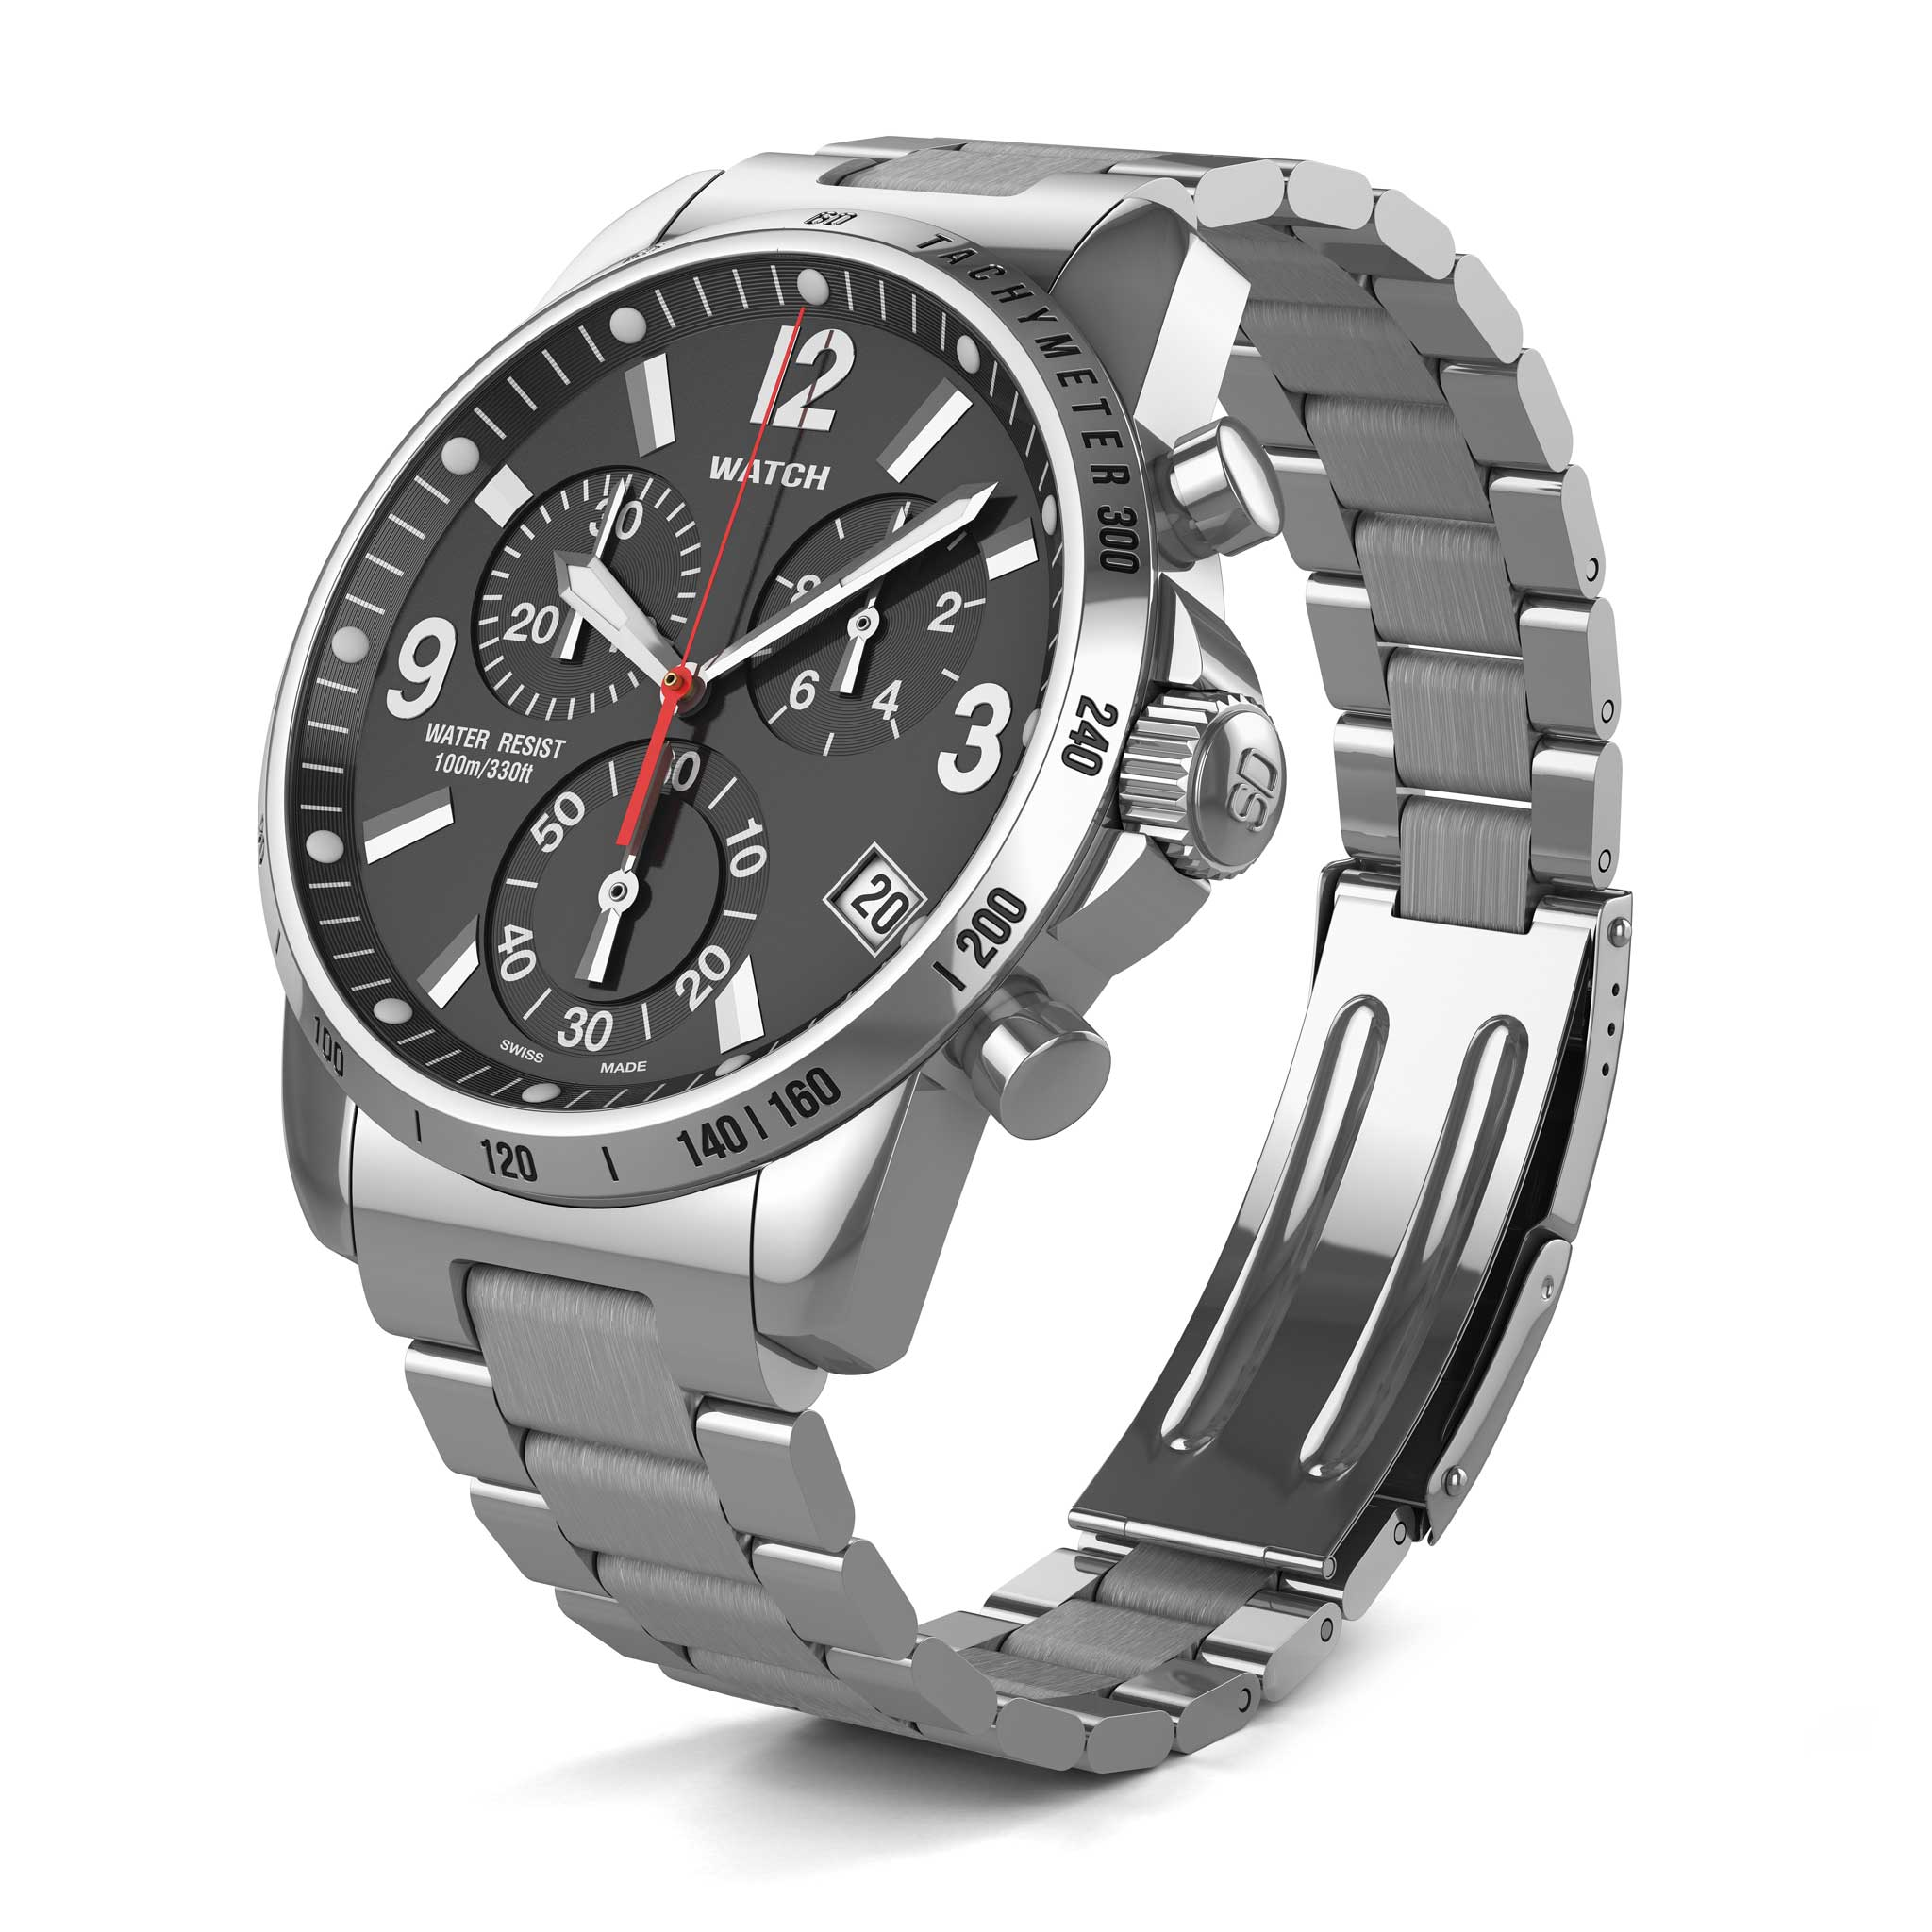 How To Choose A Man's Wristwatch?